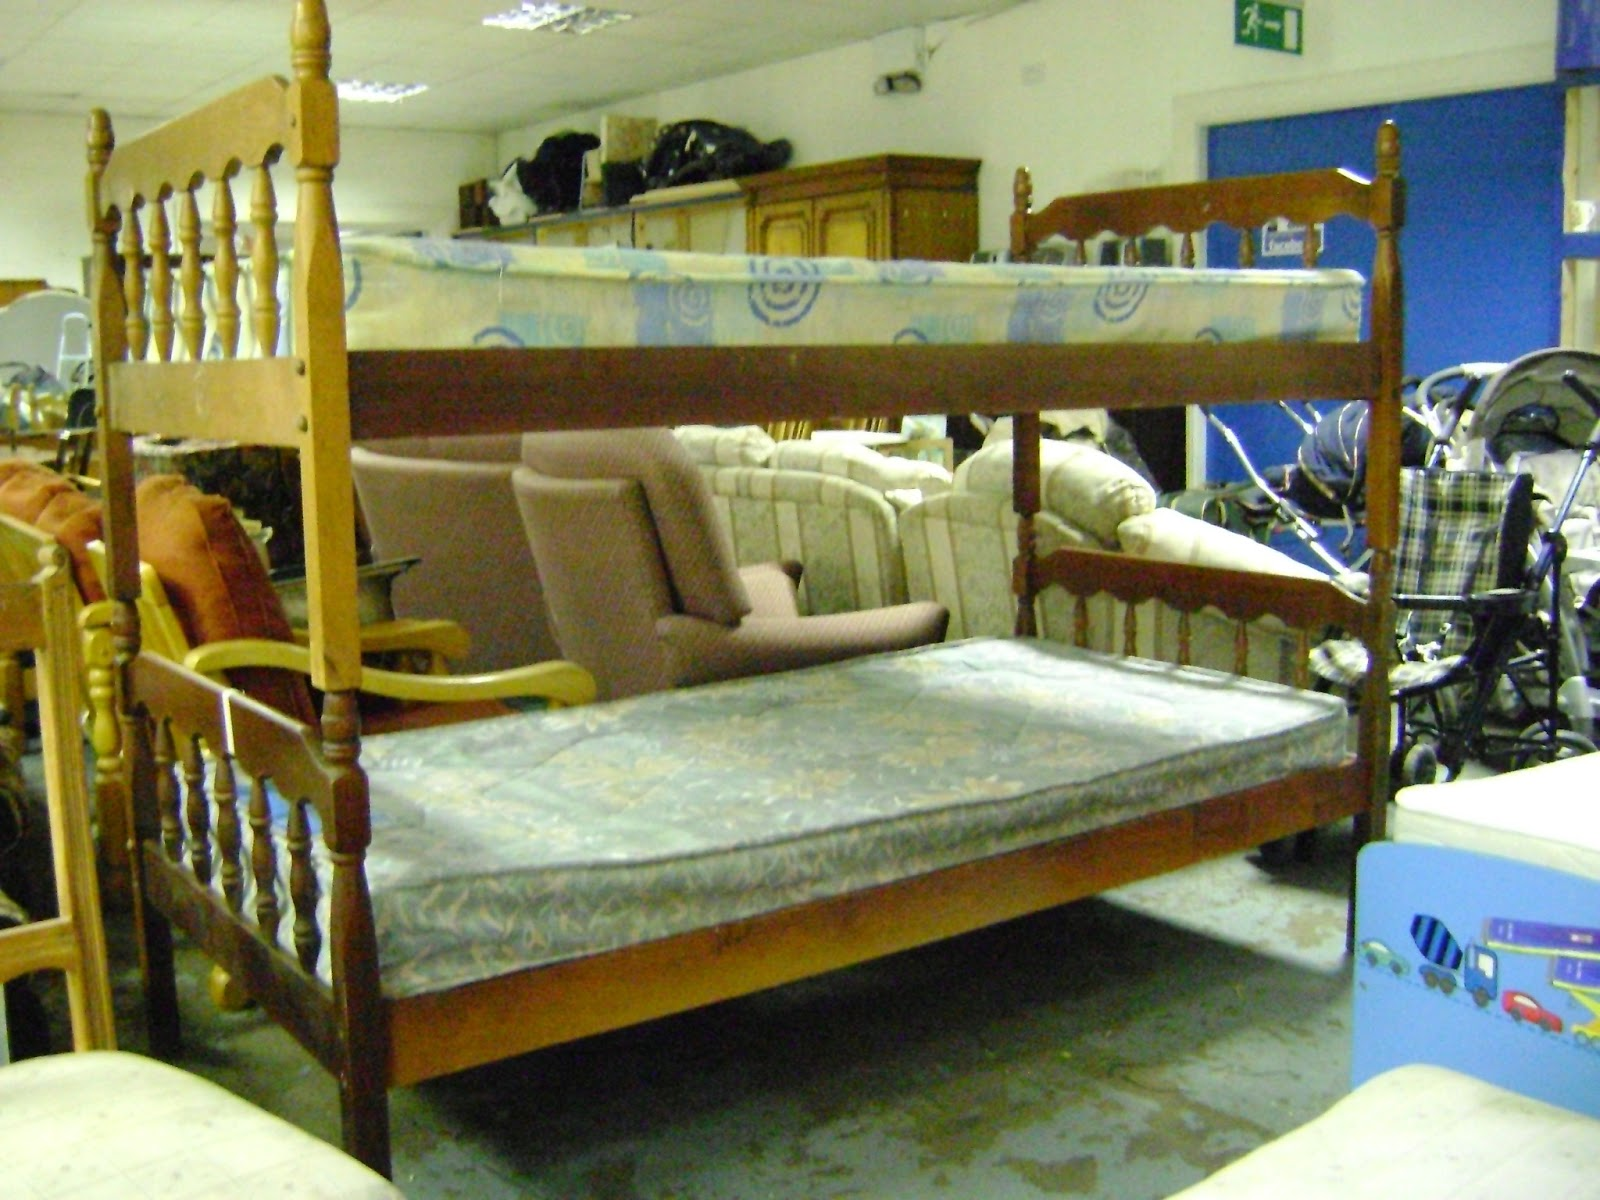 Deccie S Done Deal Second Hand Furniture House Clearances New Stock Update 16th April 2013 Round Table Metal Headboard Bread Maker Bunk Beds Wardrobe Office Desk Rocking Chair Bedroom Cupboard Arm